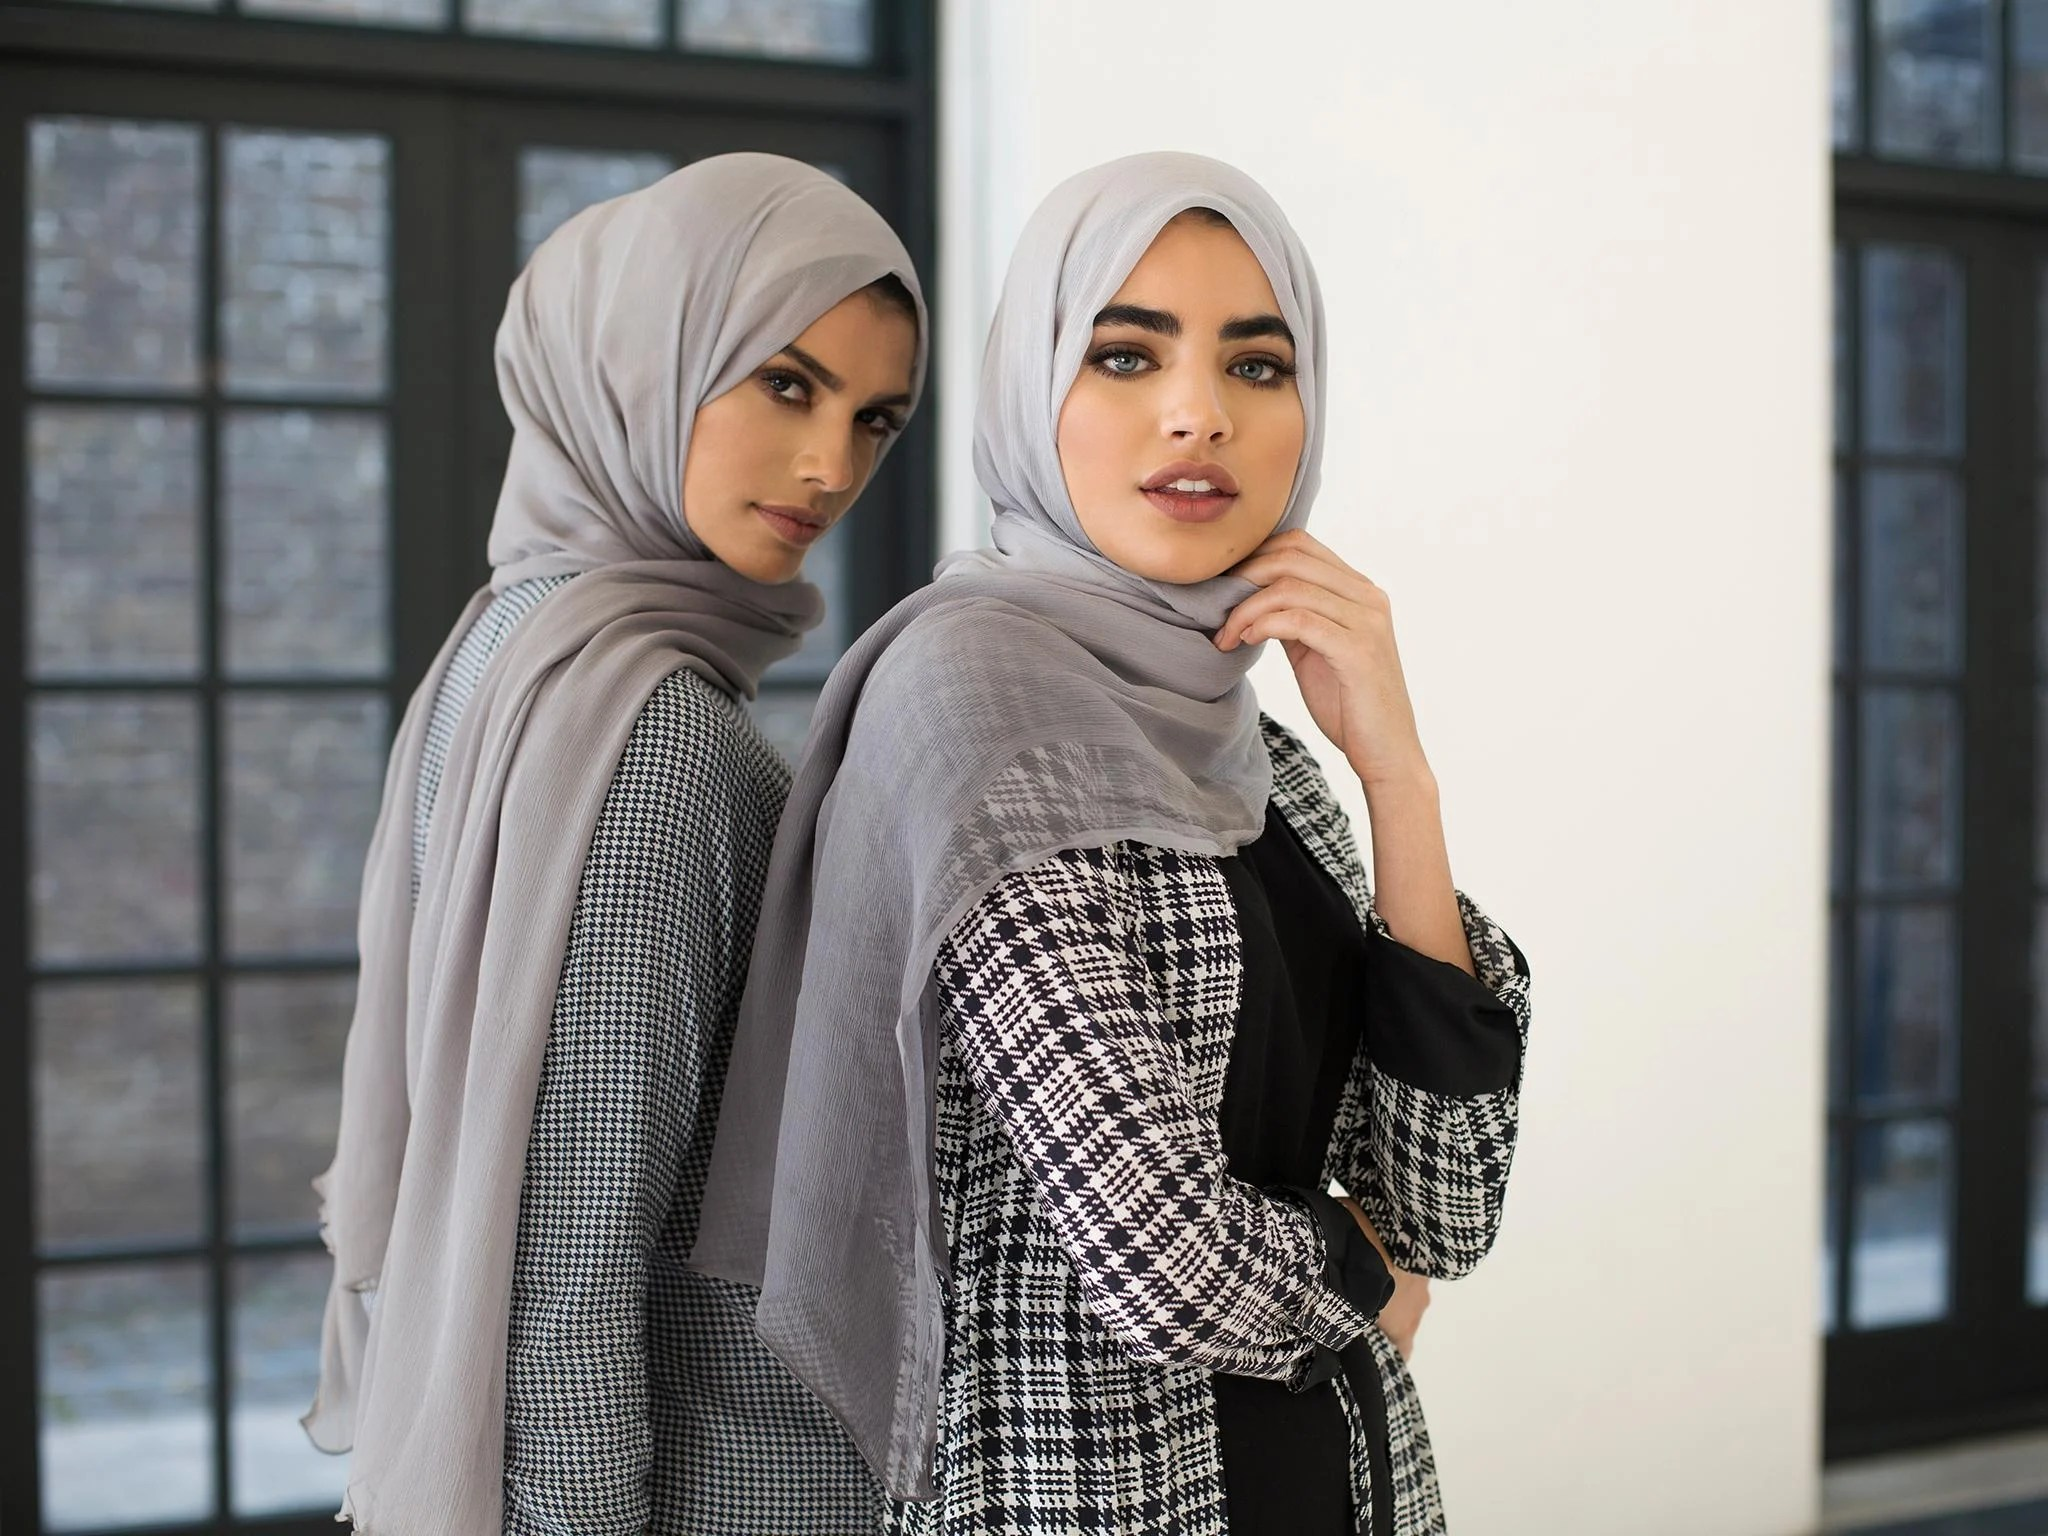 Modest fashion  How covering up became mainstream   The Independent Modest fashion  How covering up became mainstream